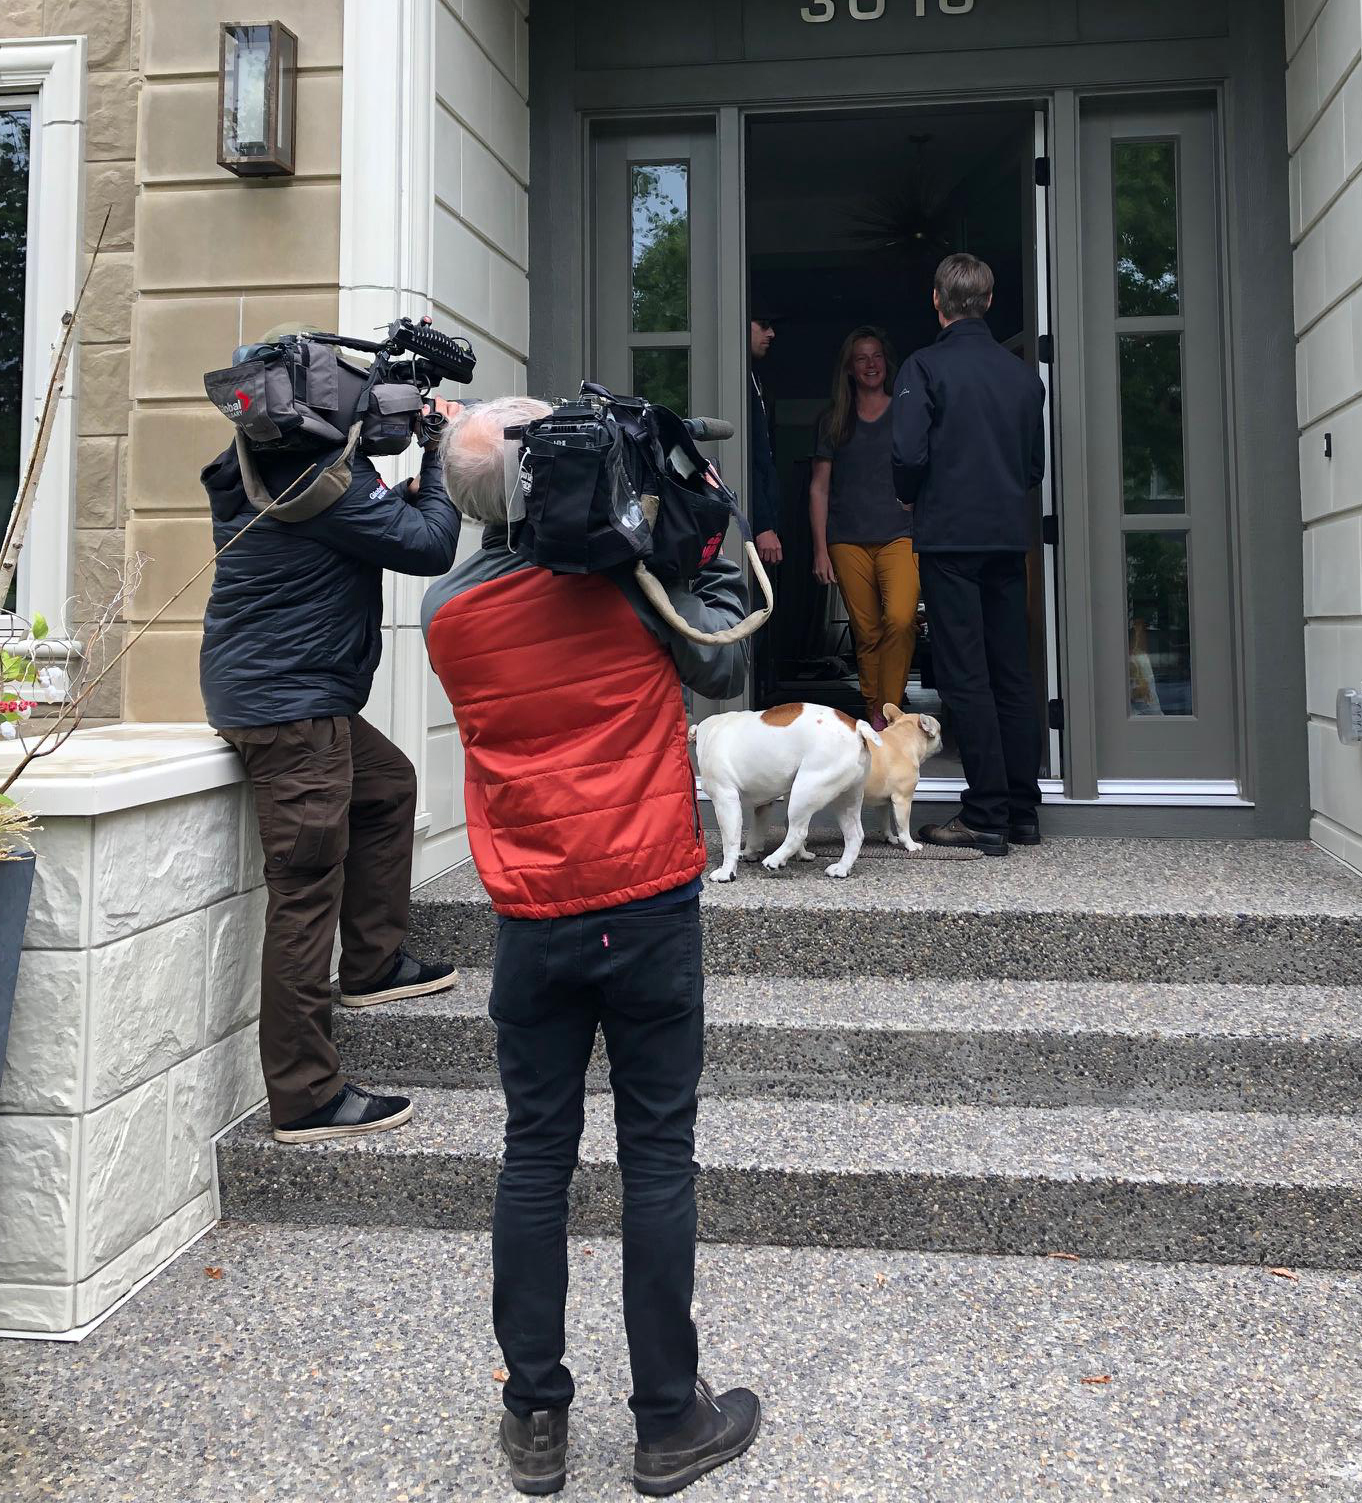 Day One of the official campaign and I had some media accompanying me while doorknocking.